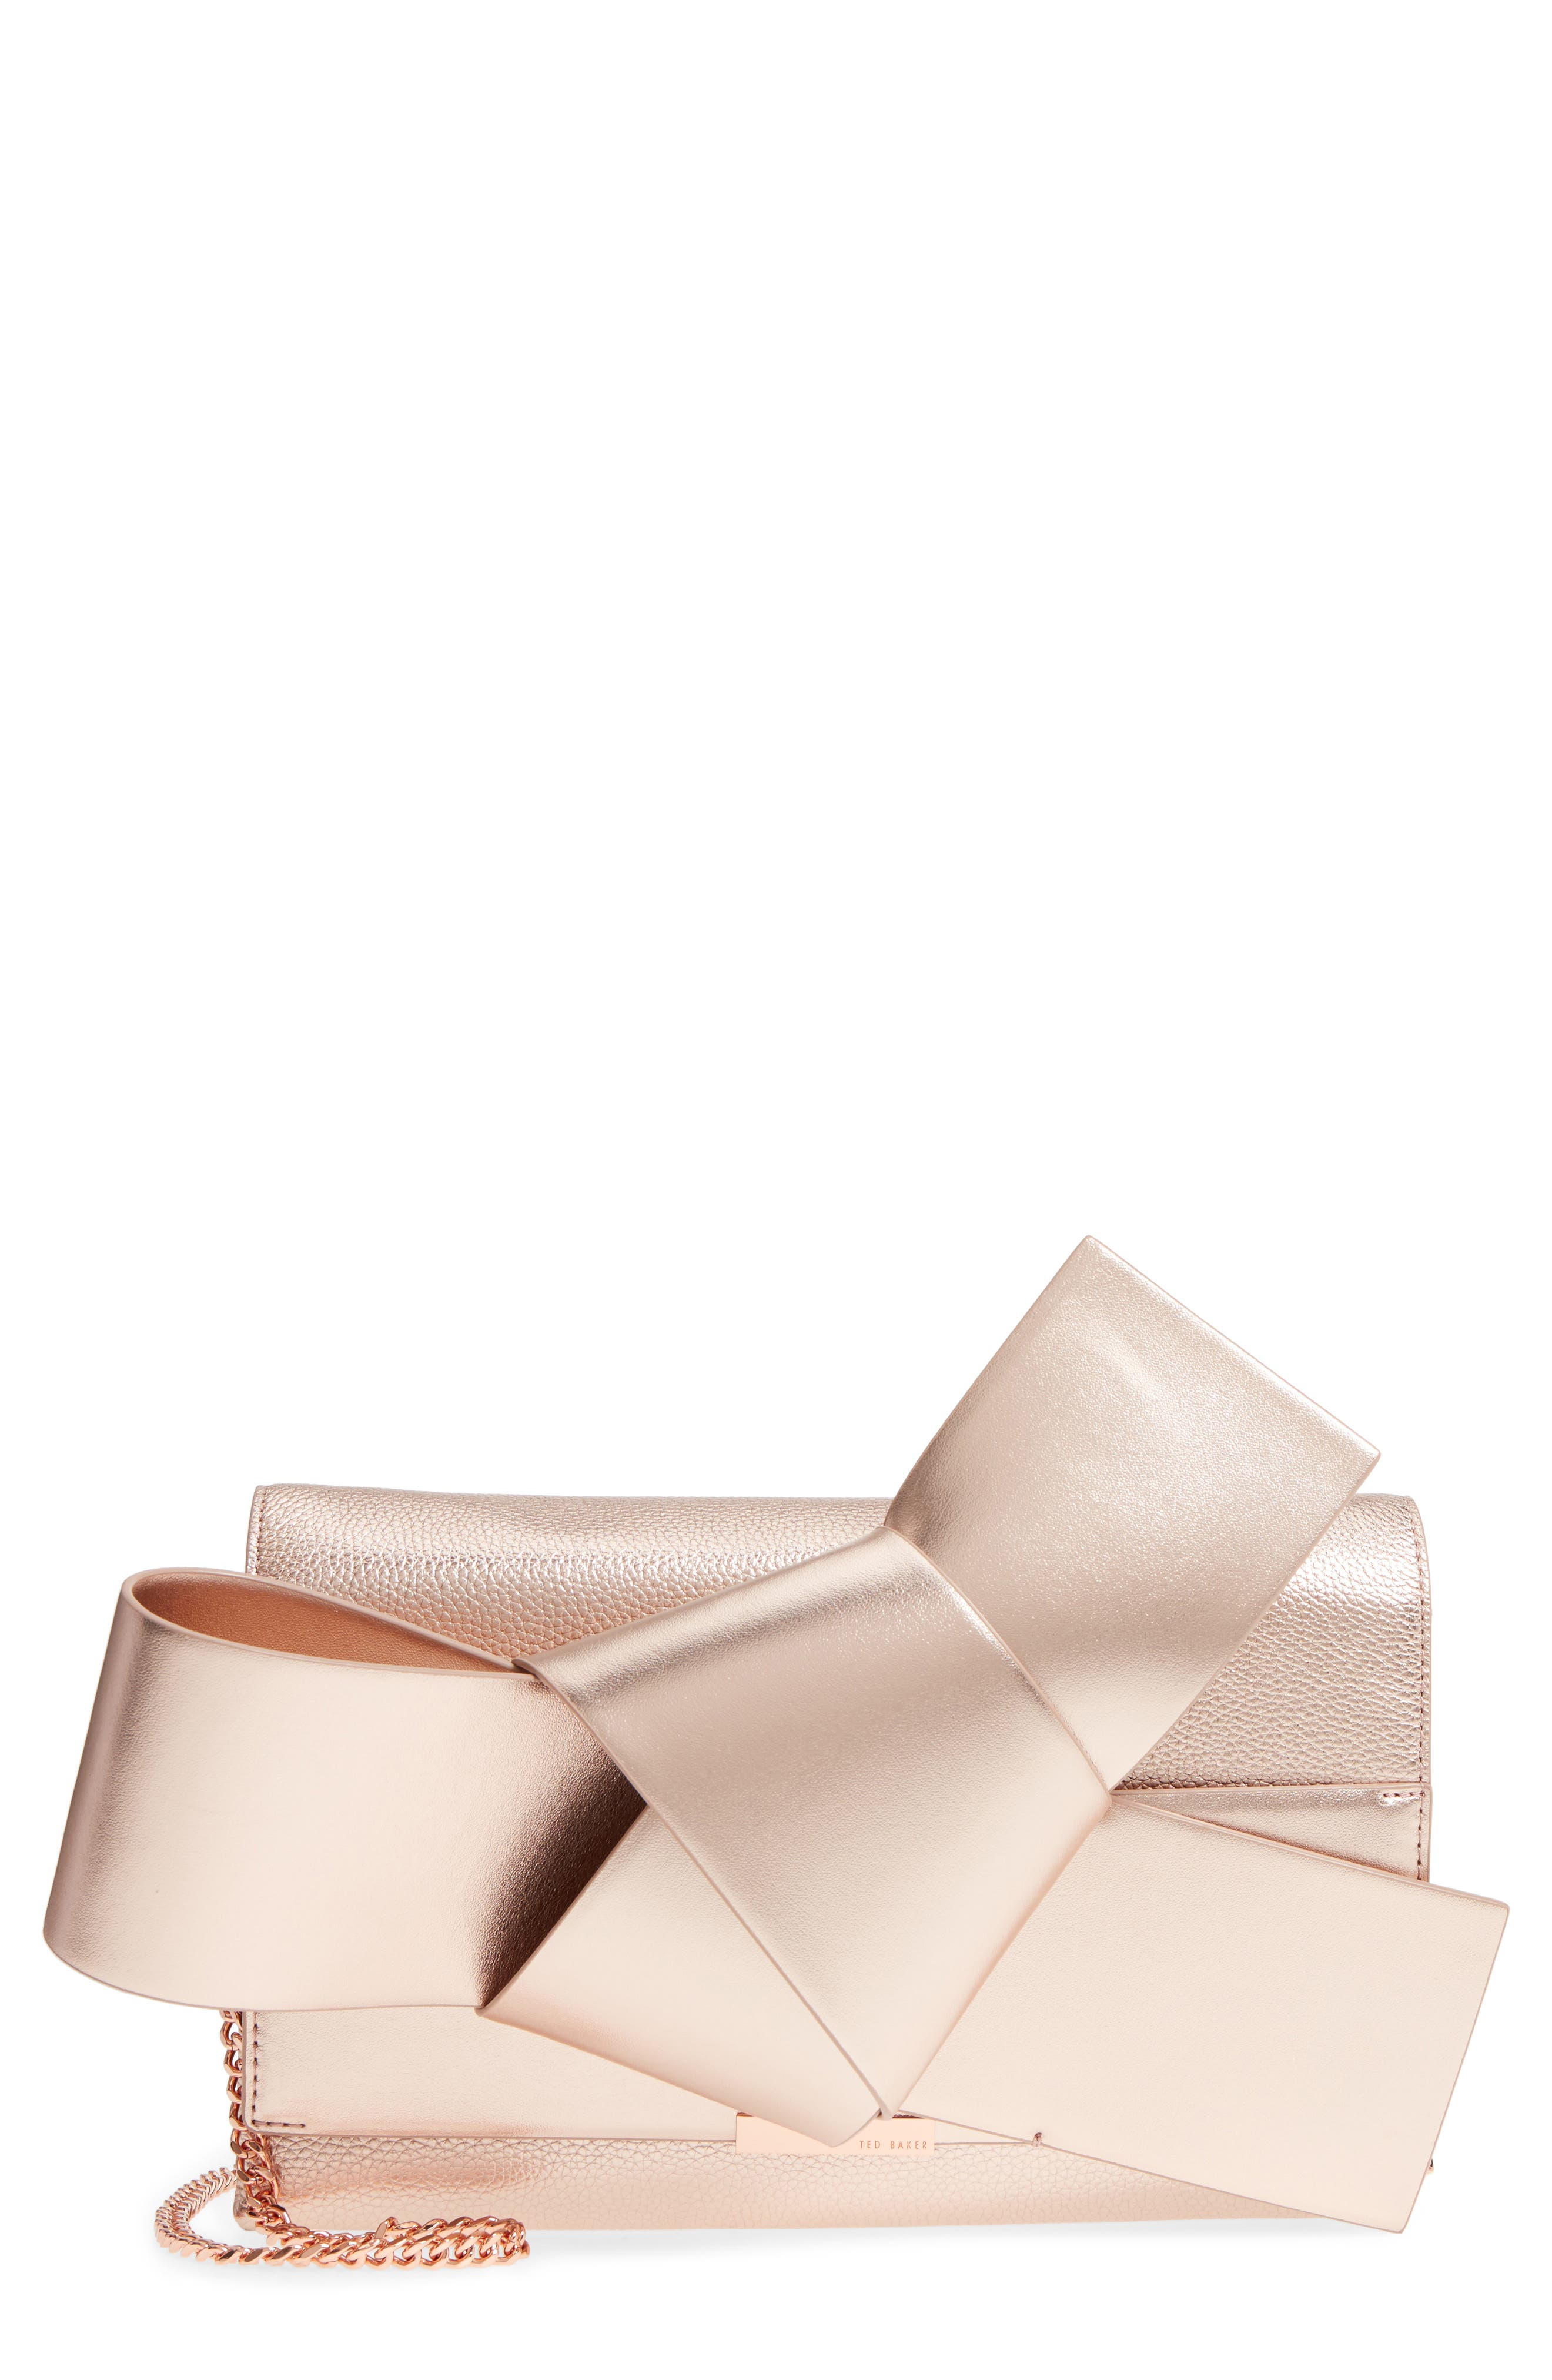 Knotted Bow Leather Clutch,                             Main thumbnail 4, color,